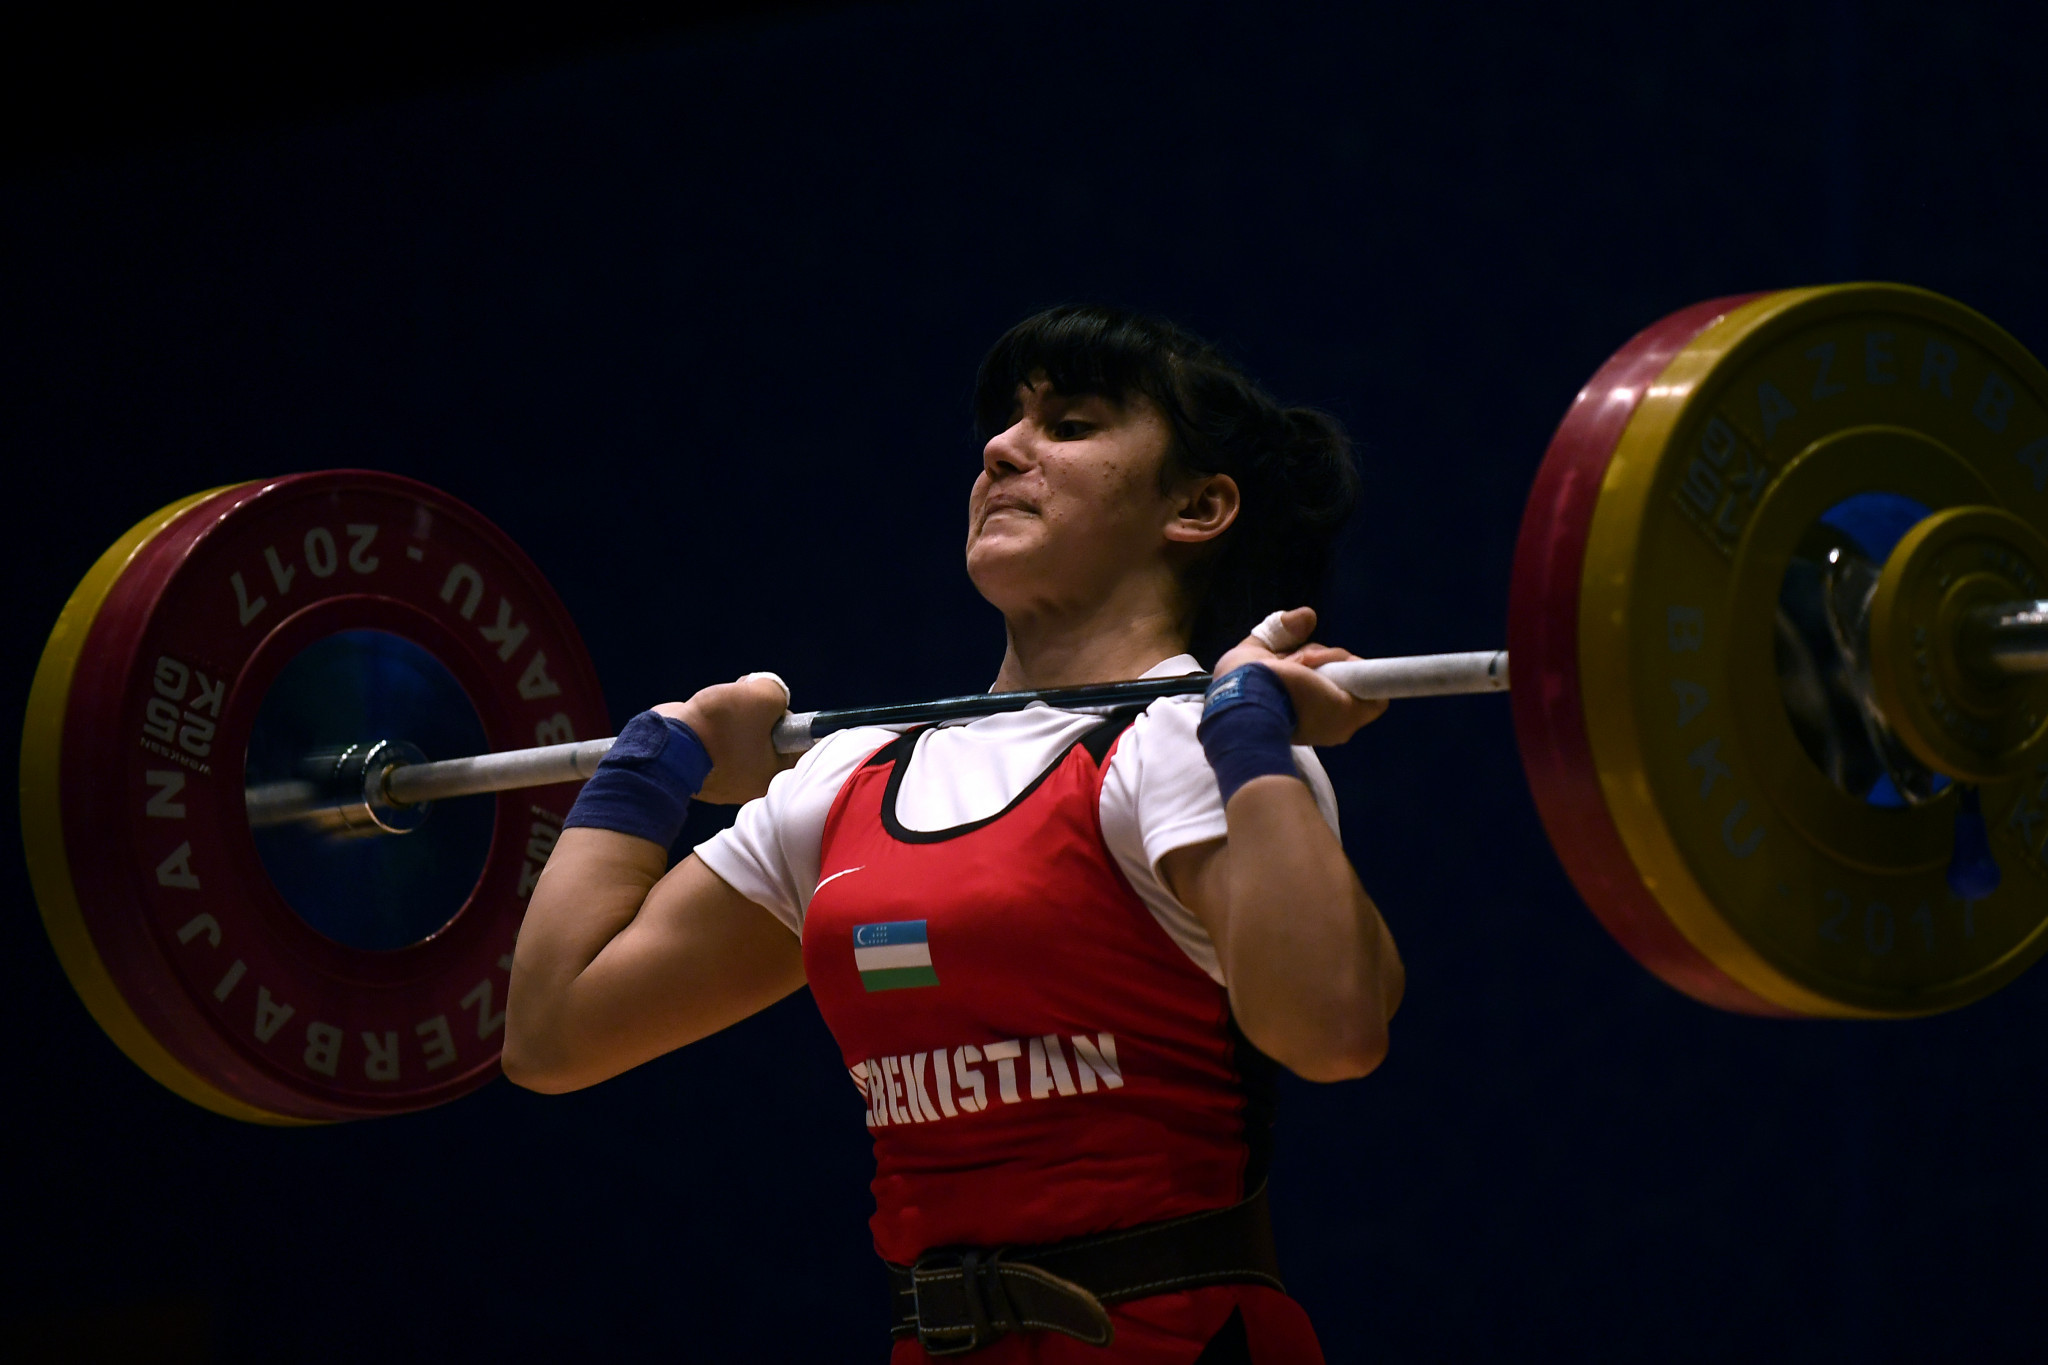 Kumushkhon Fayzullaeva won the hat-trick of overall, snatch and clean and jerk titles in the women's 64 kilograms division ©Getty Images